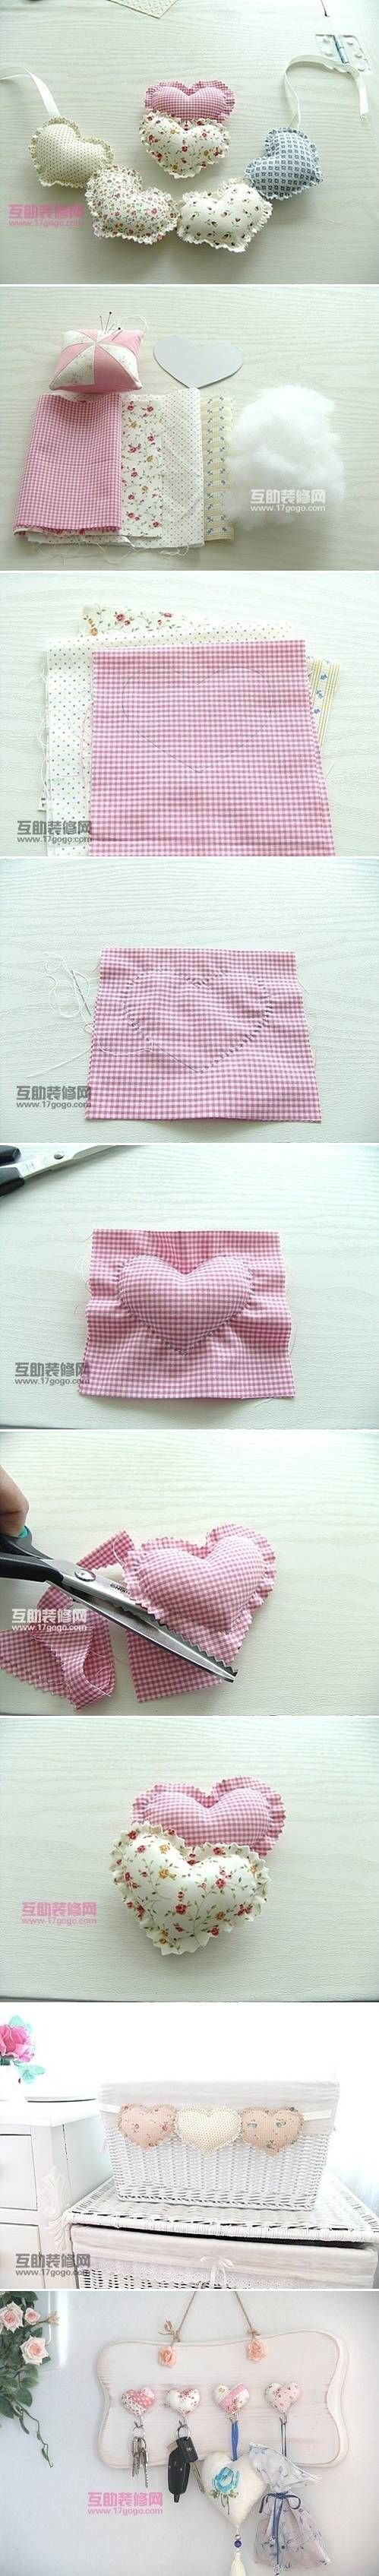 DIY Fabric Heart Pendant